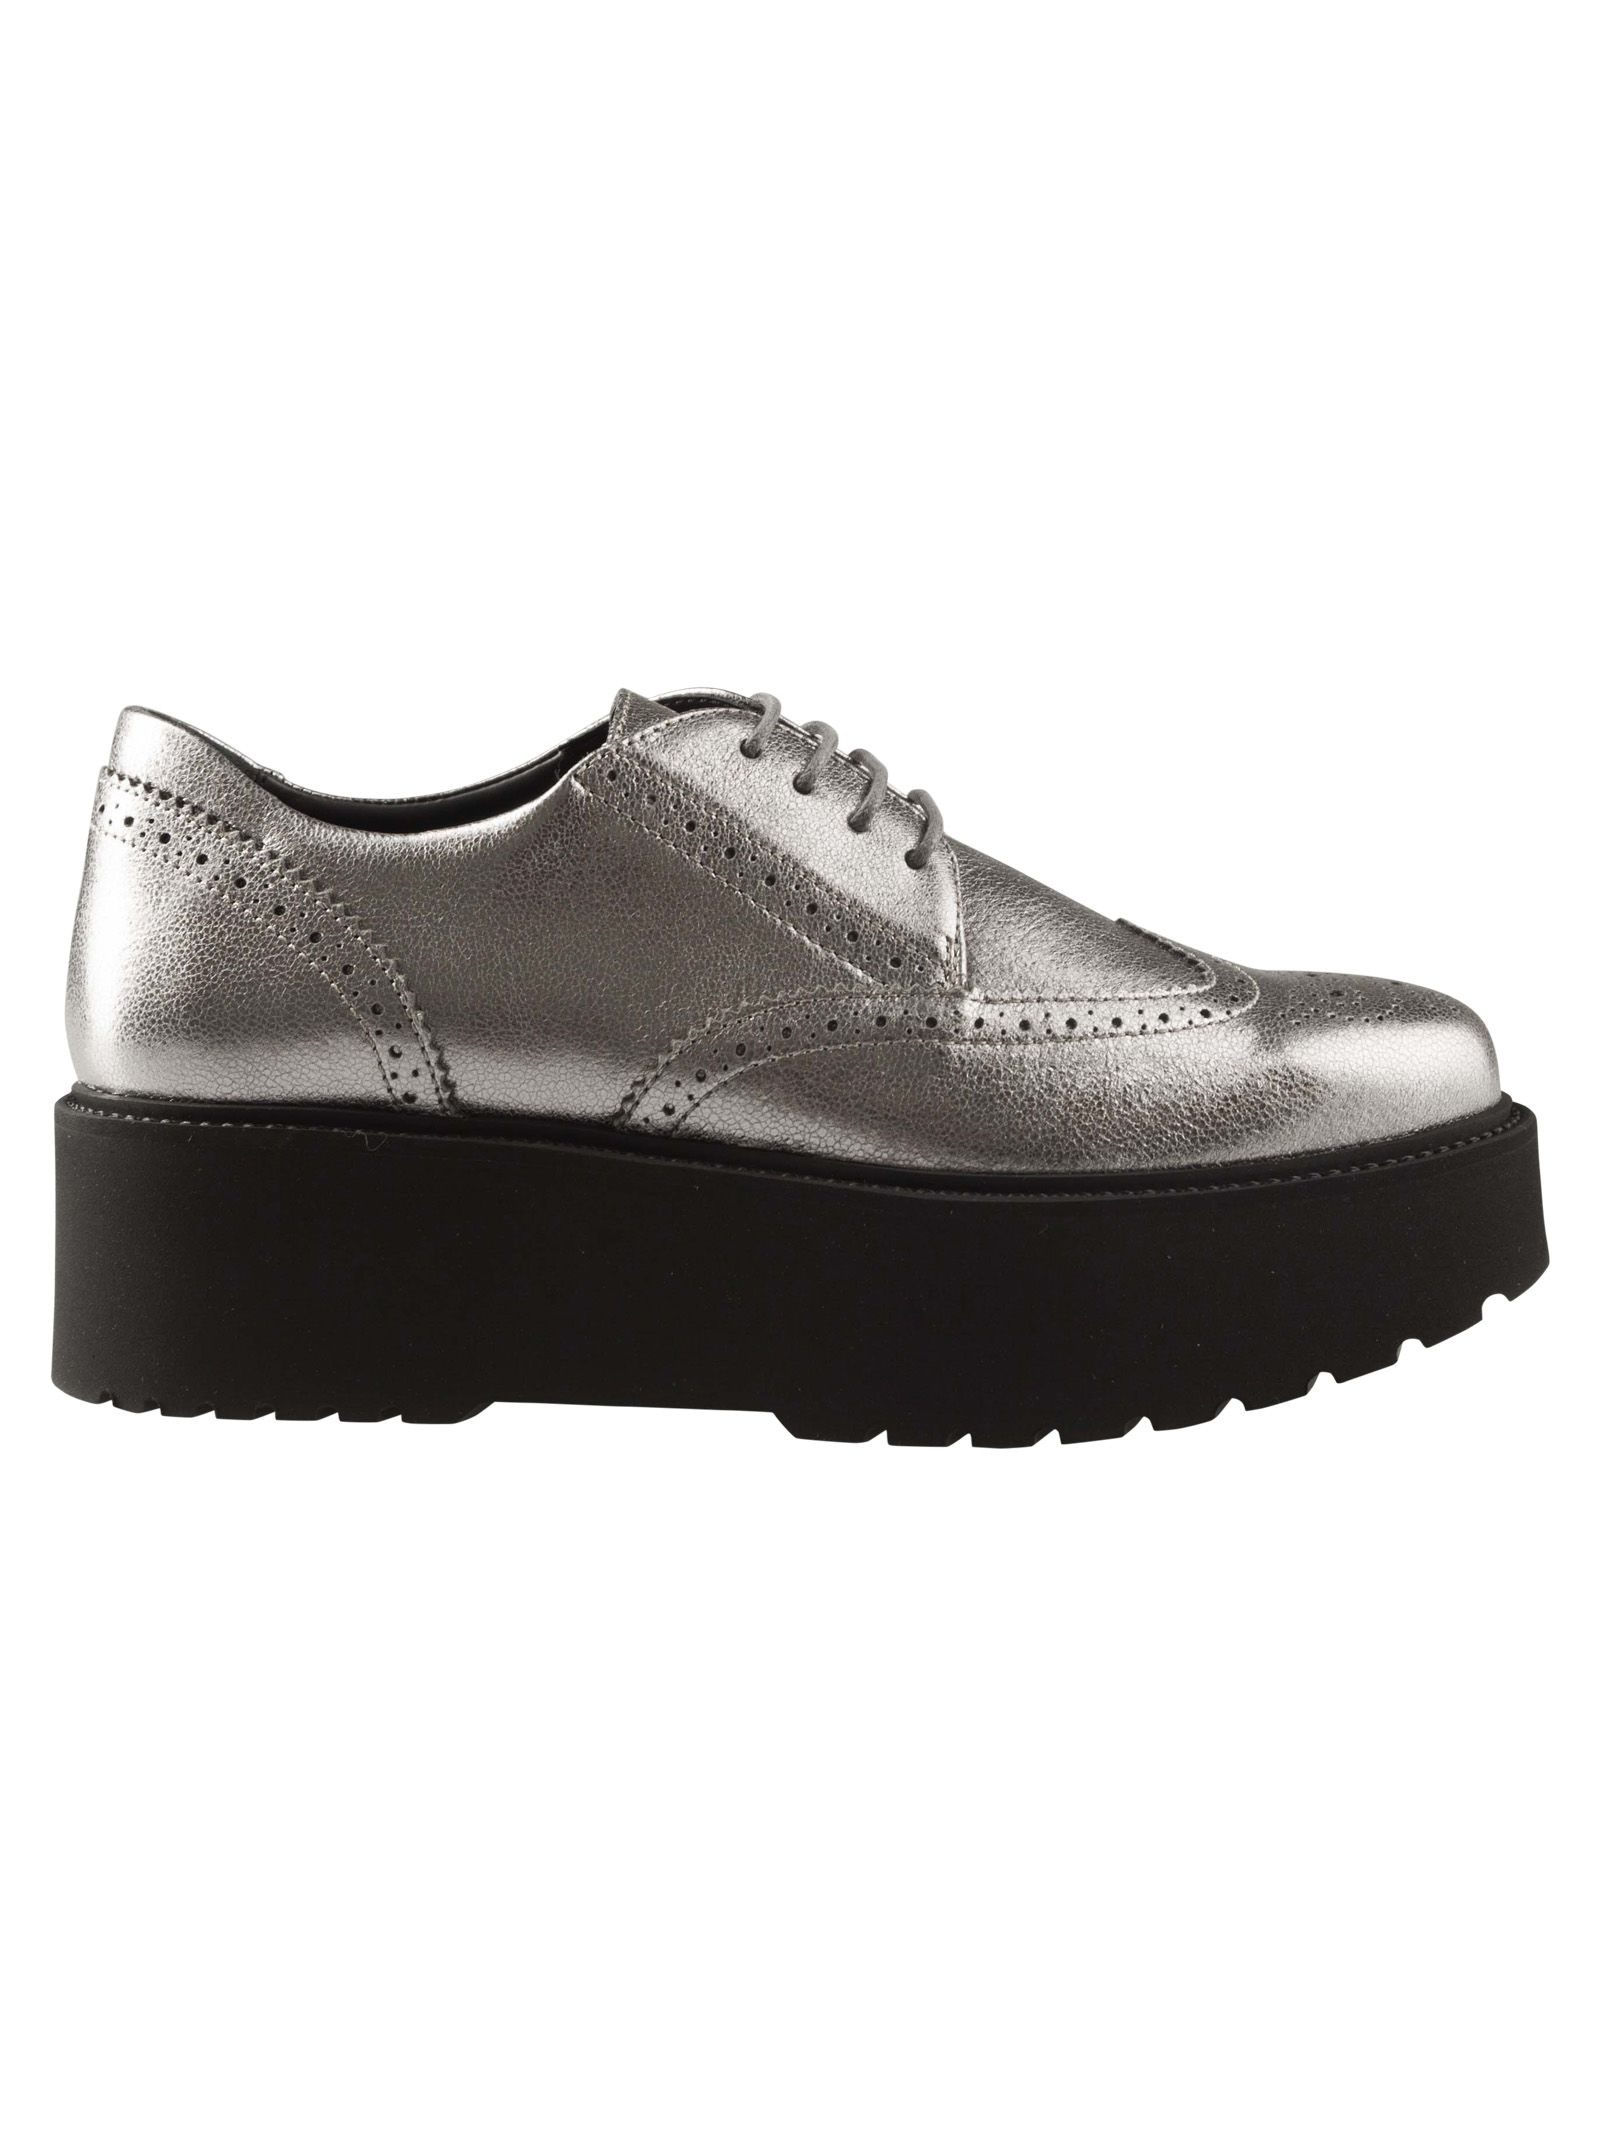 Route Oxford Shoes, B205